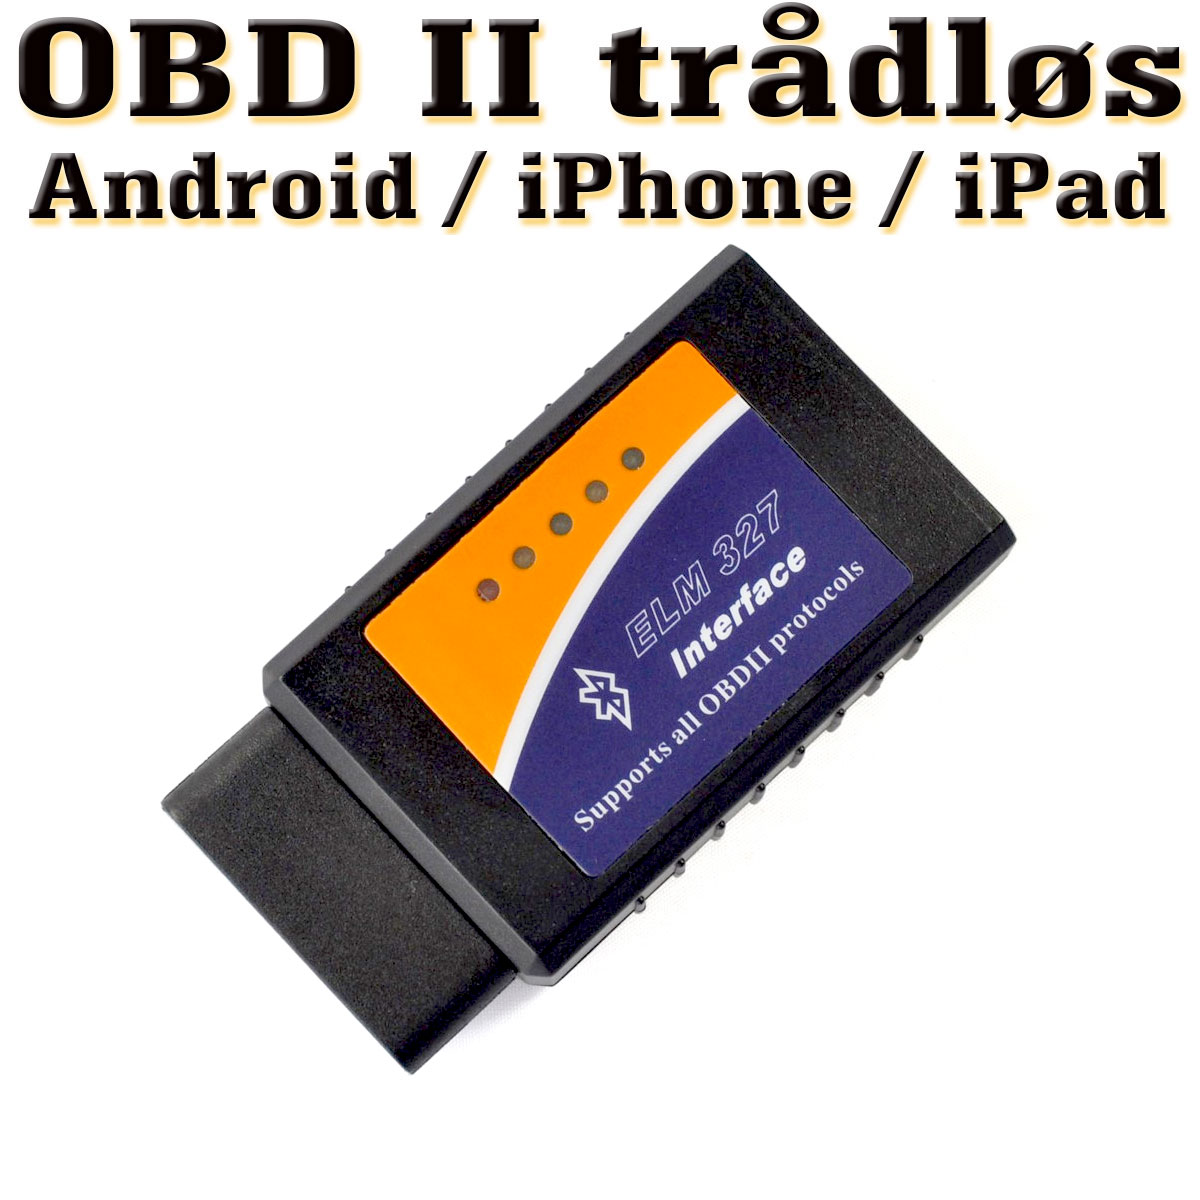 OBDII Bluetooth / WiFi / iPhone / Android / diagnoseverktøy